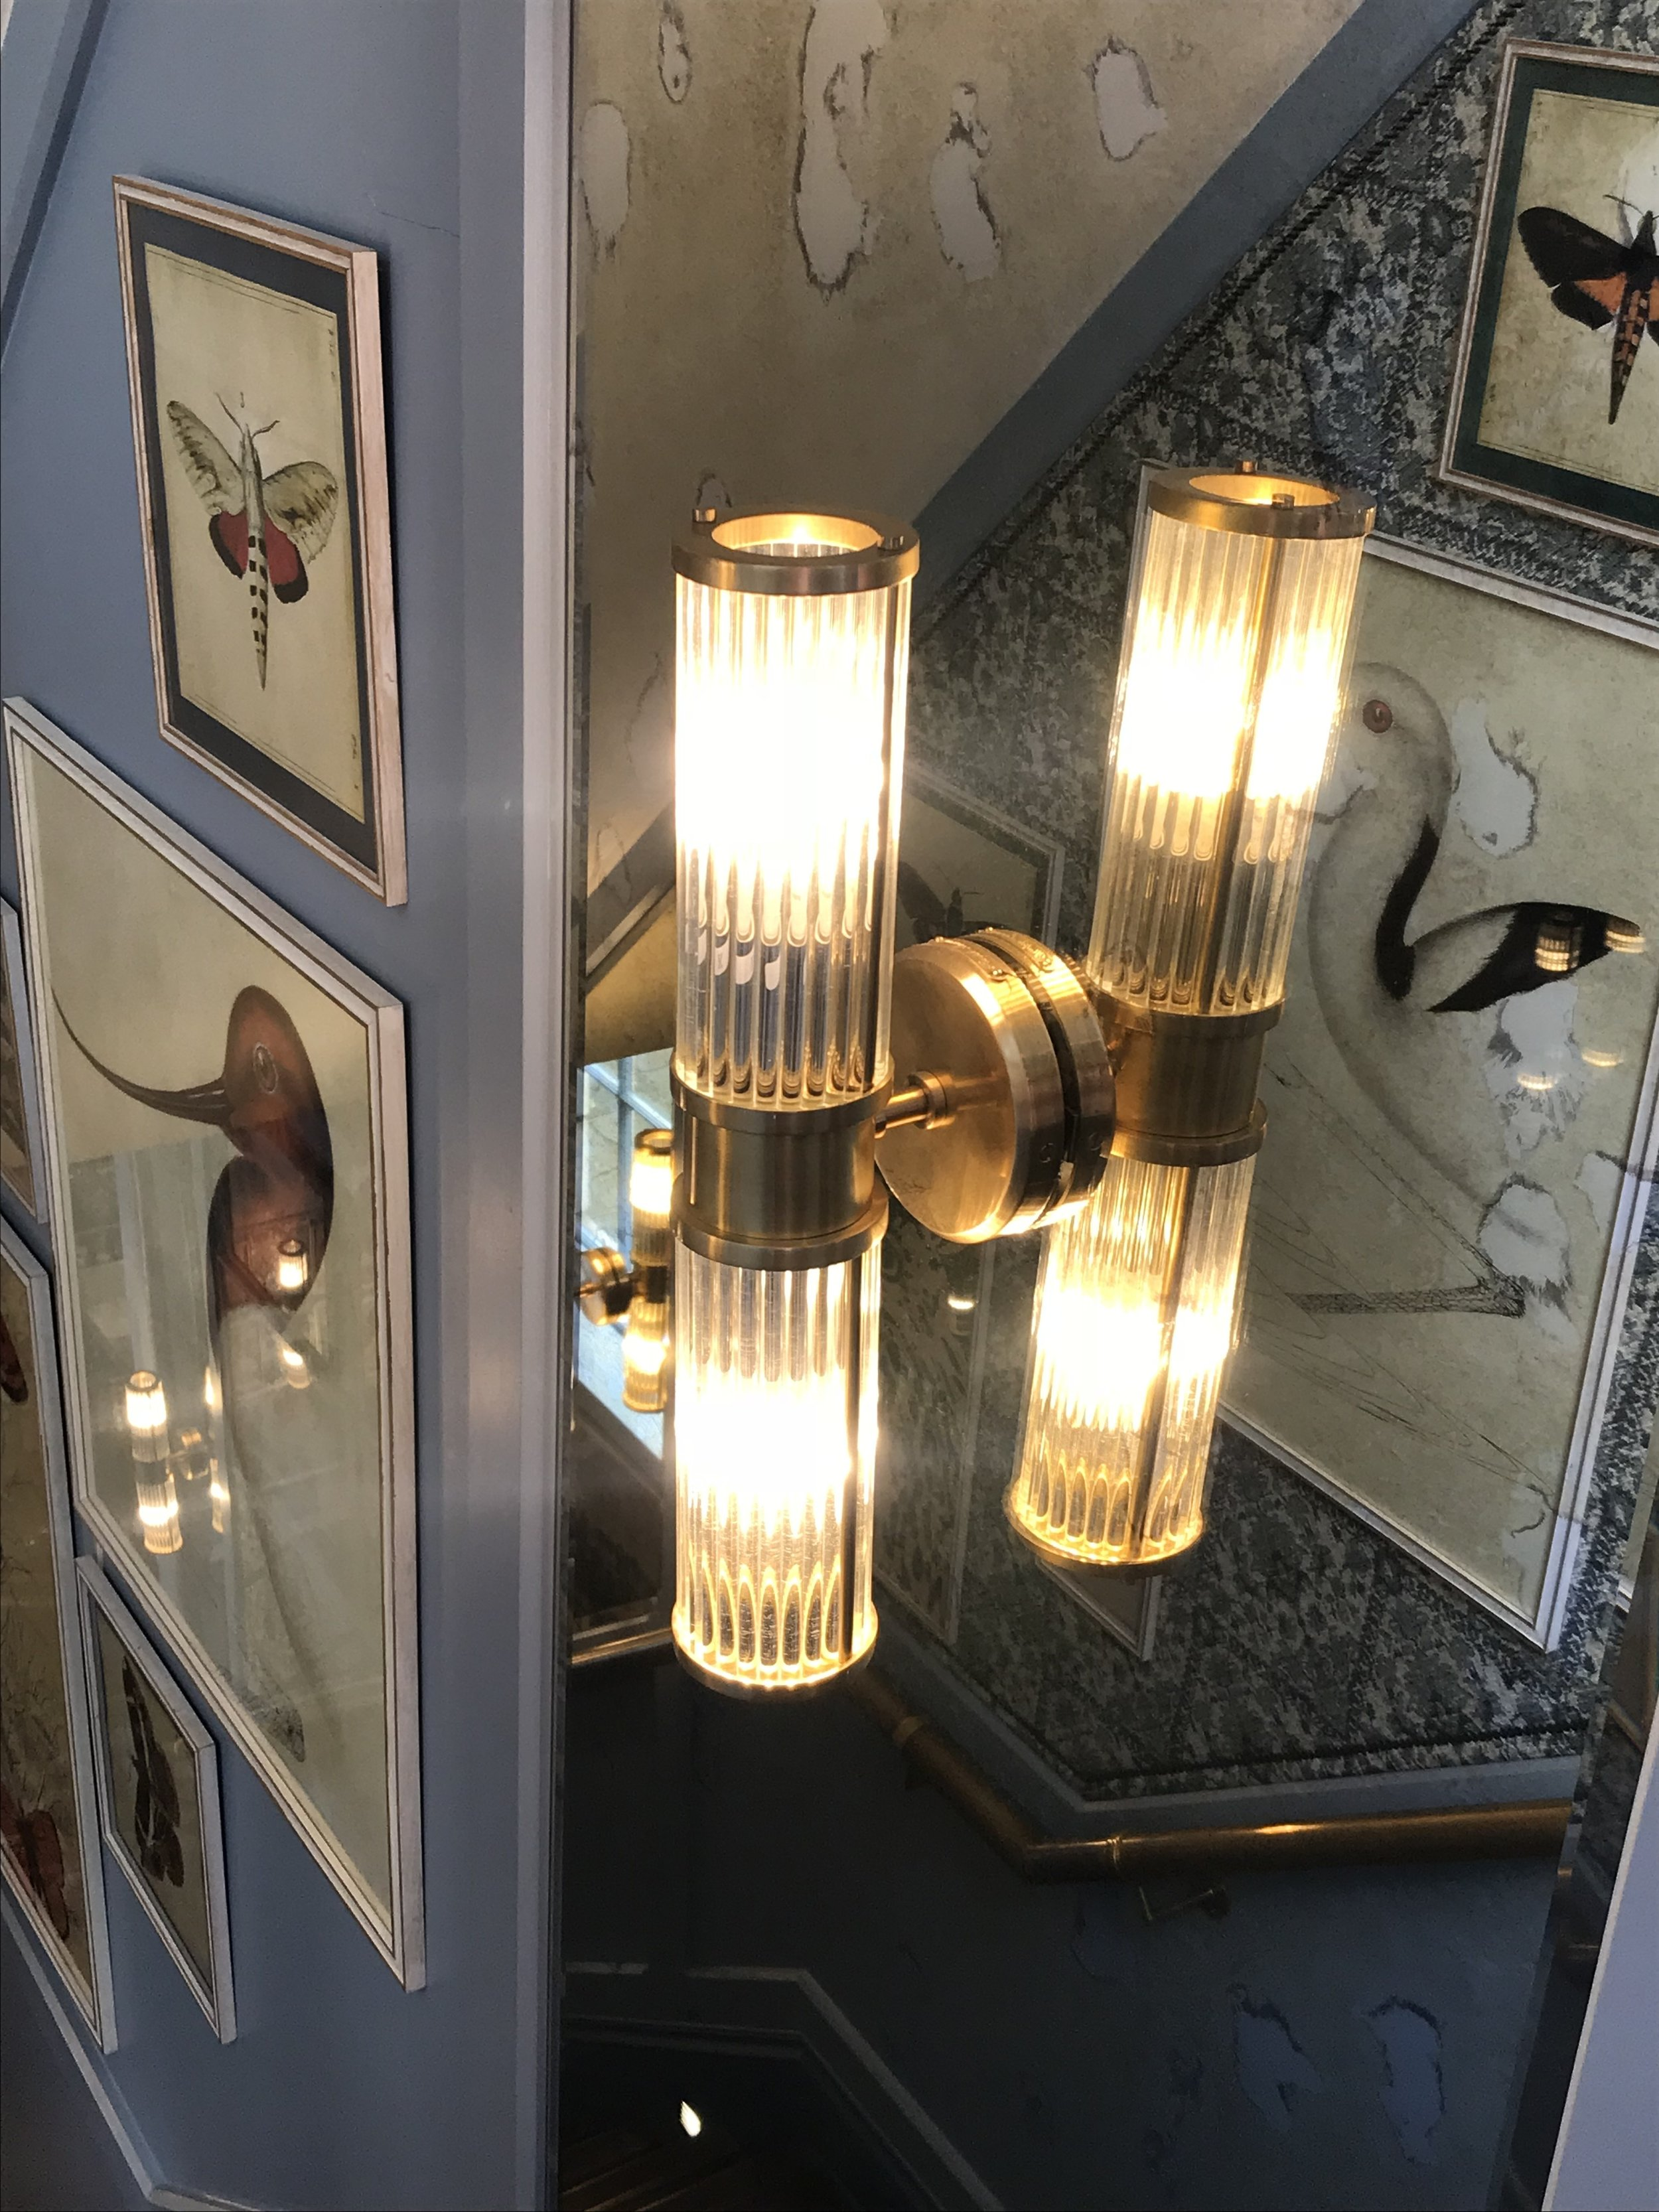 The light fixings I mentioned earlier, that would look perfect in an Art deco style bathroom, or even either side of above the bed.